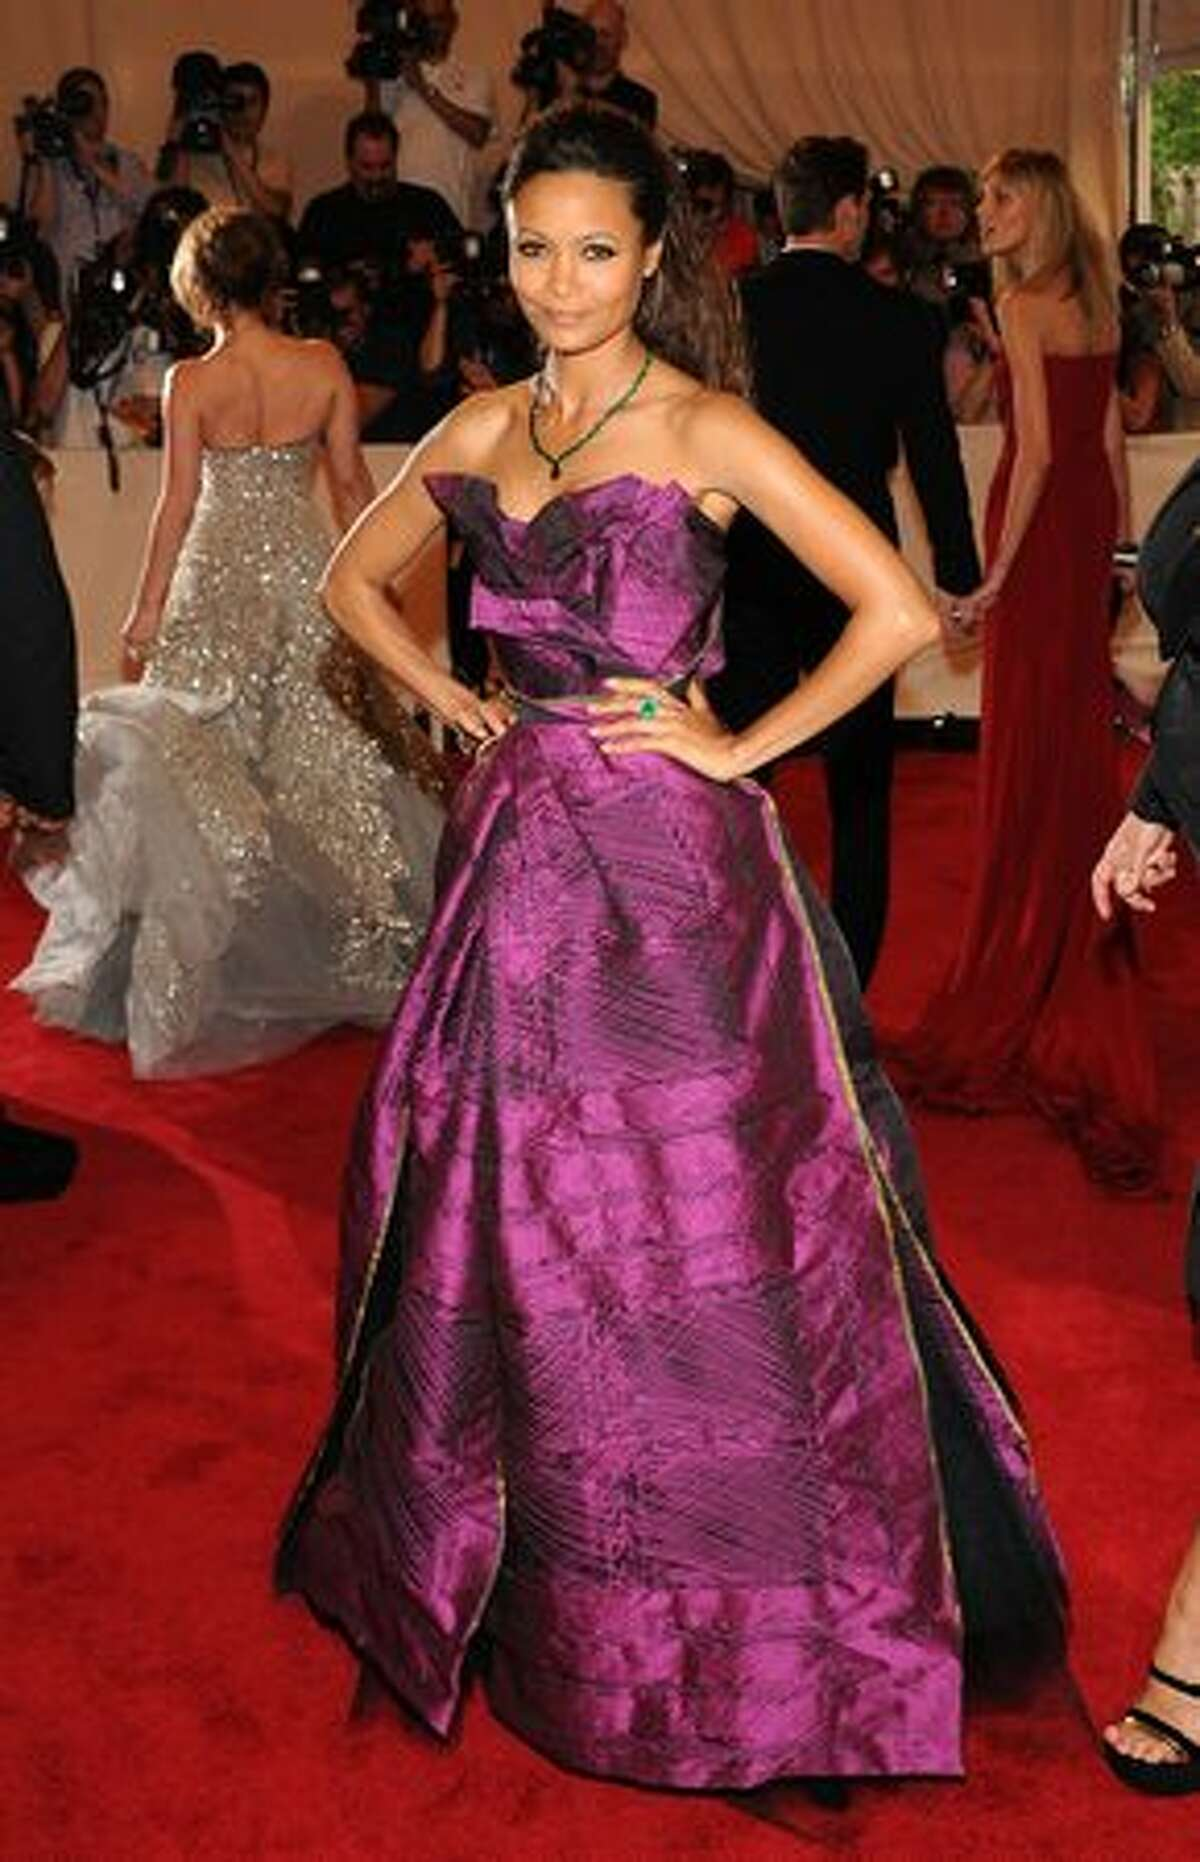 Actress Thandie Newton takes a dare in a Vivienne Westwood gown and pulls it off. This is not a color that works for many, but whoever chose it for her knew what they were doing.